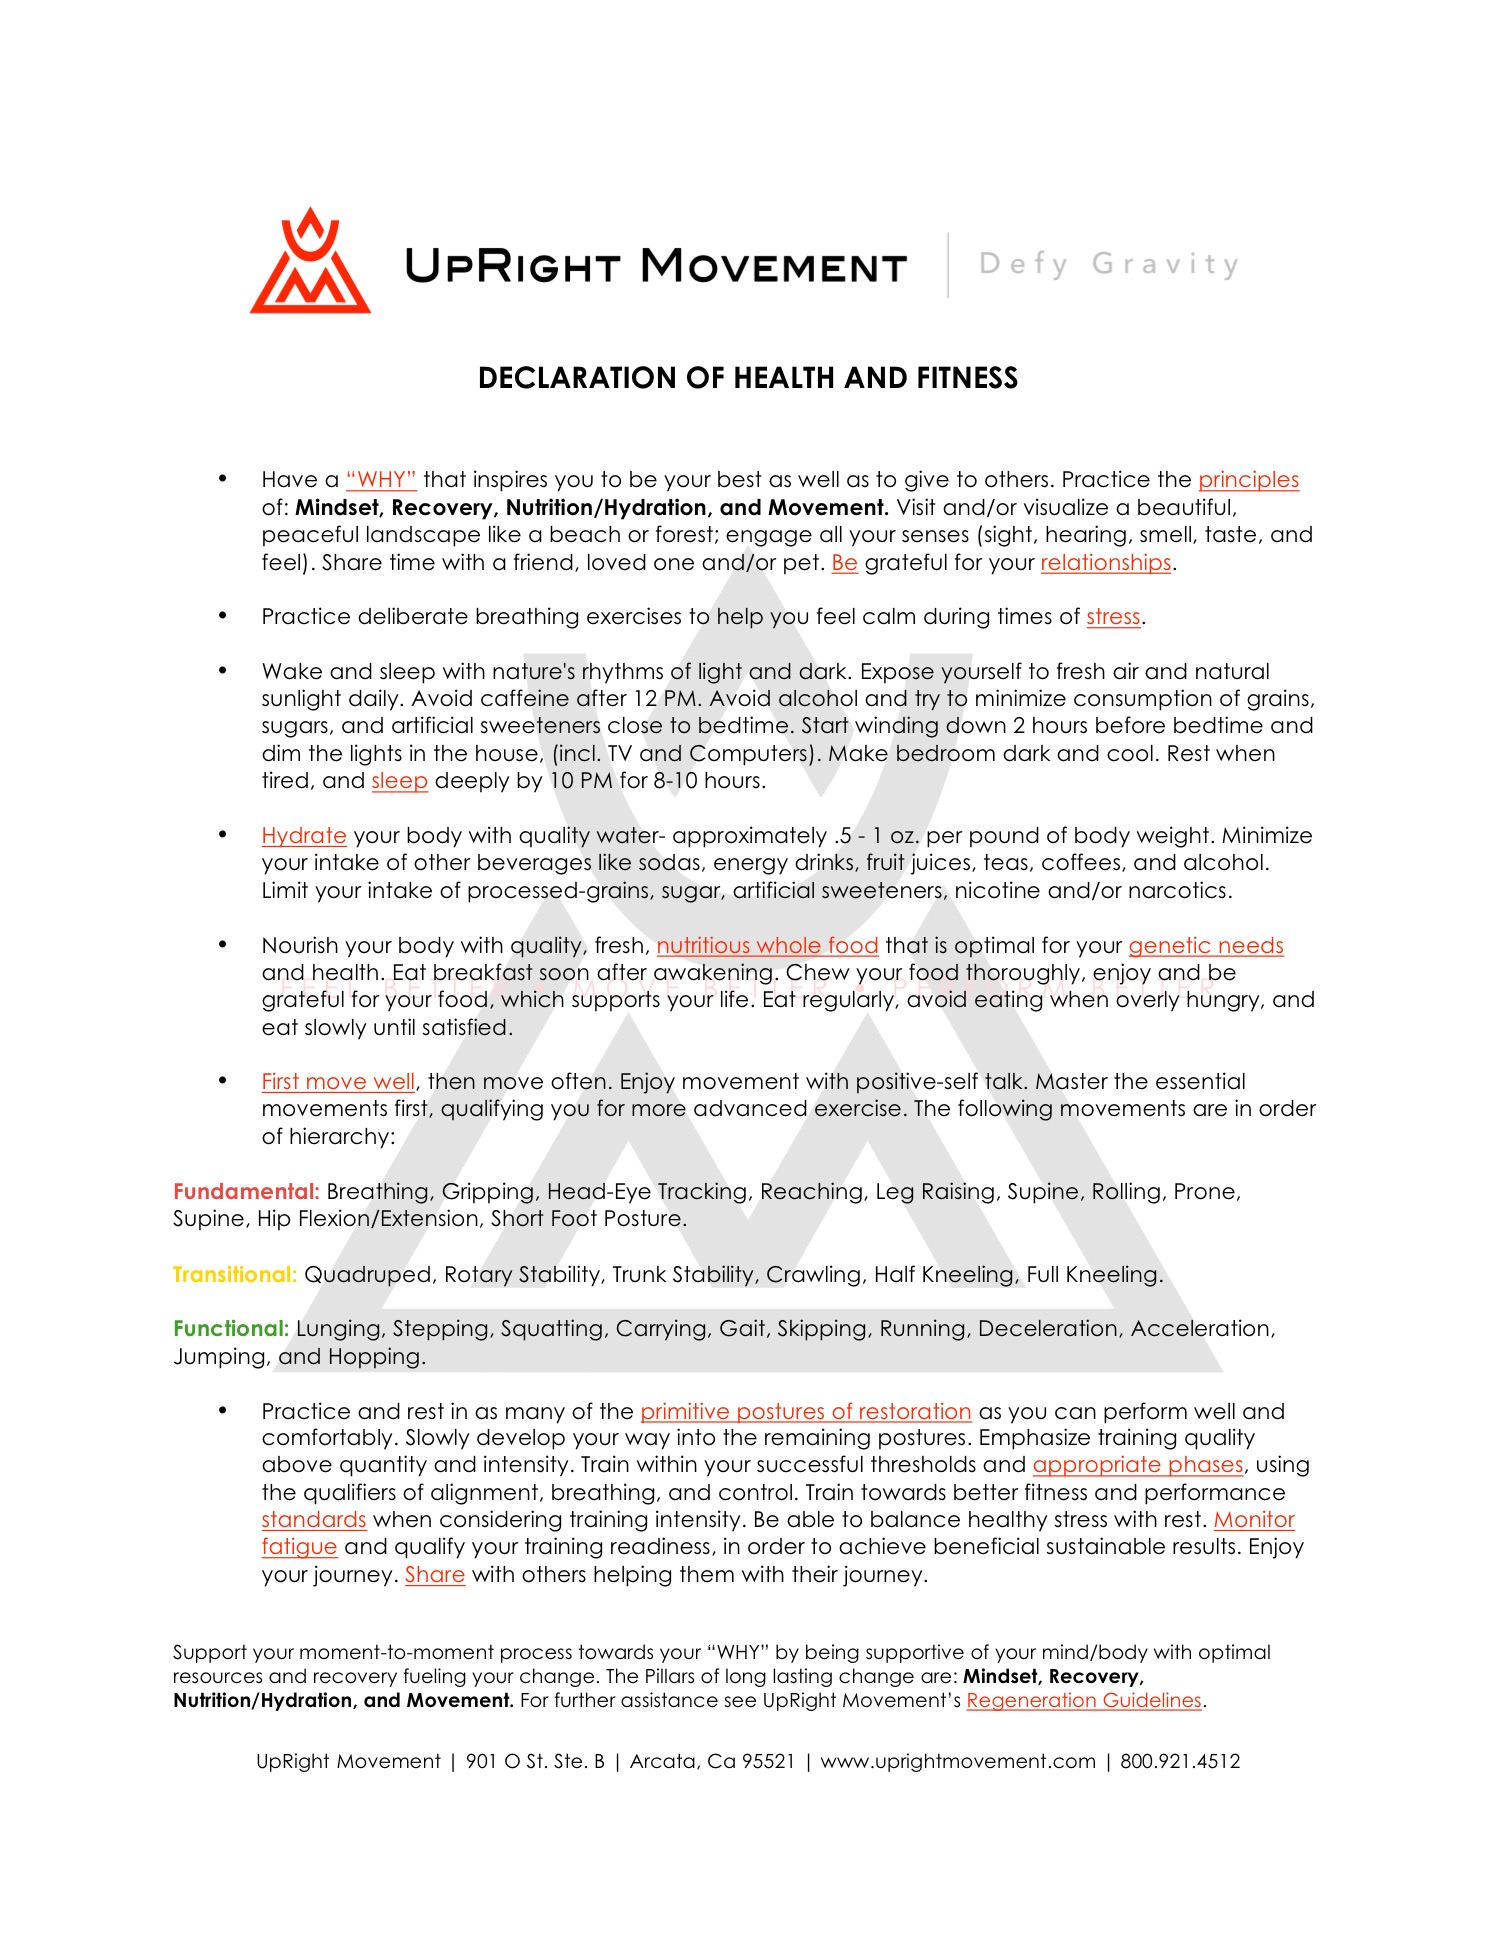 UpRight Movement Declaration Of Health And Fitness